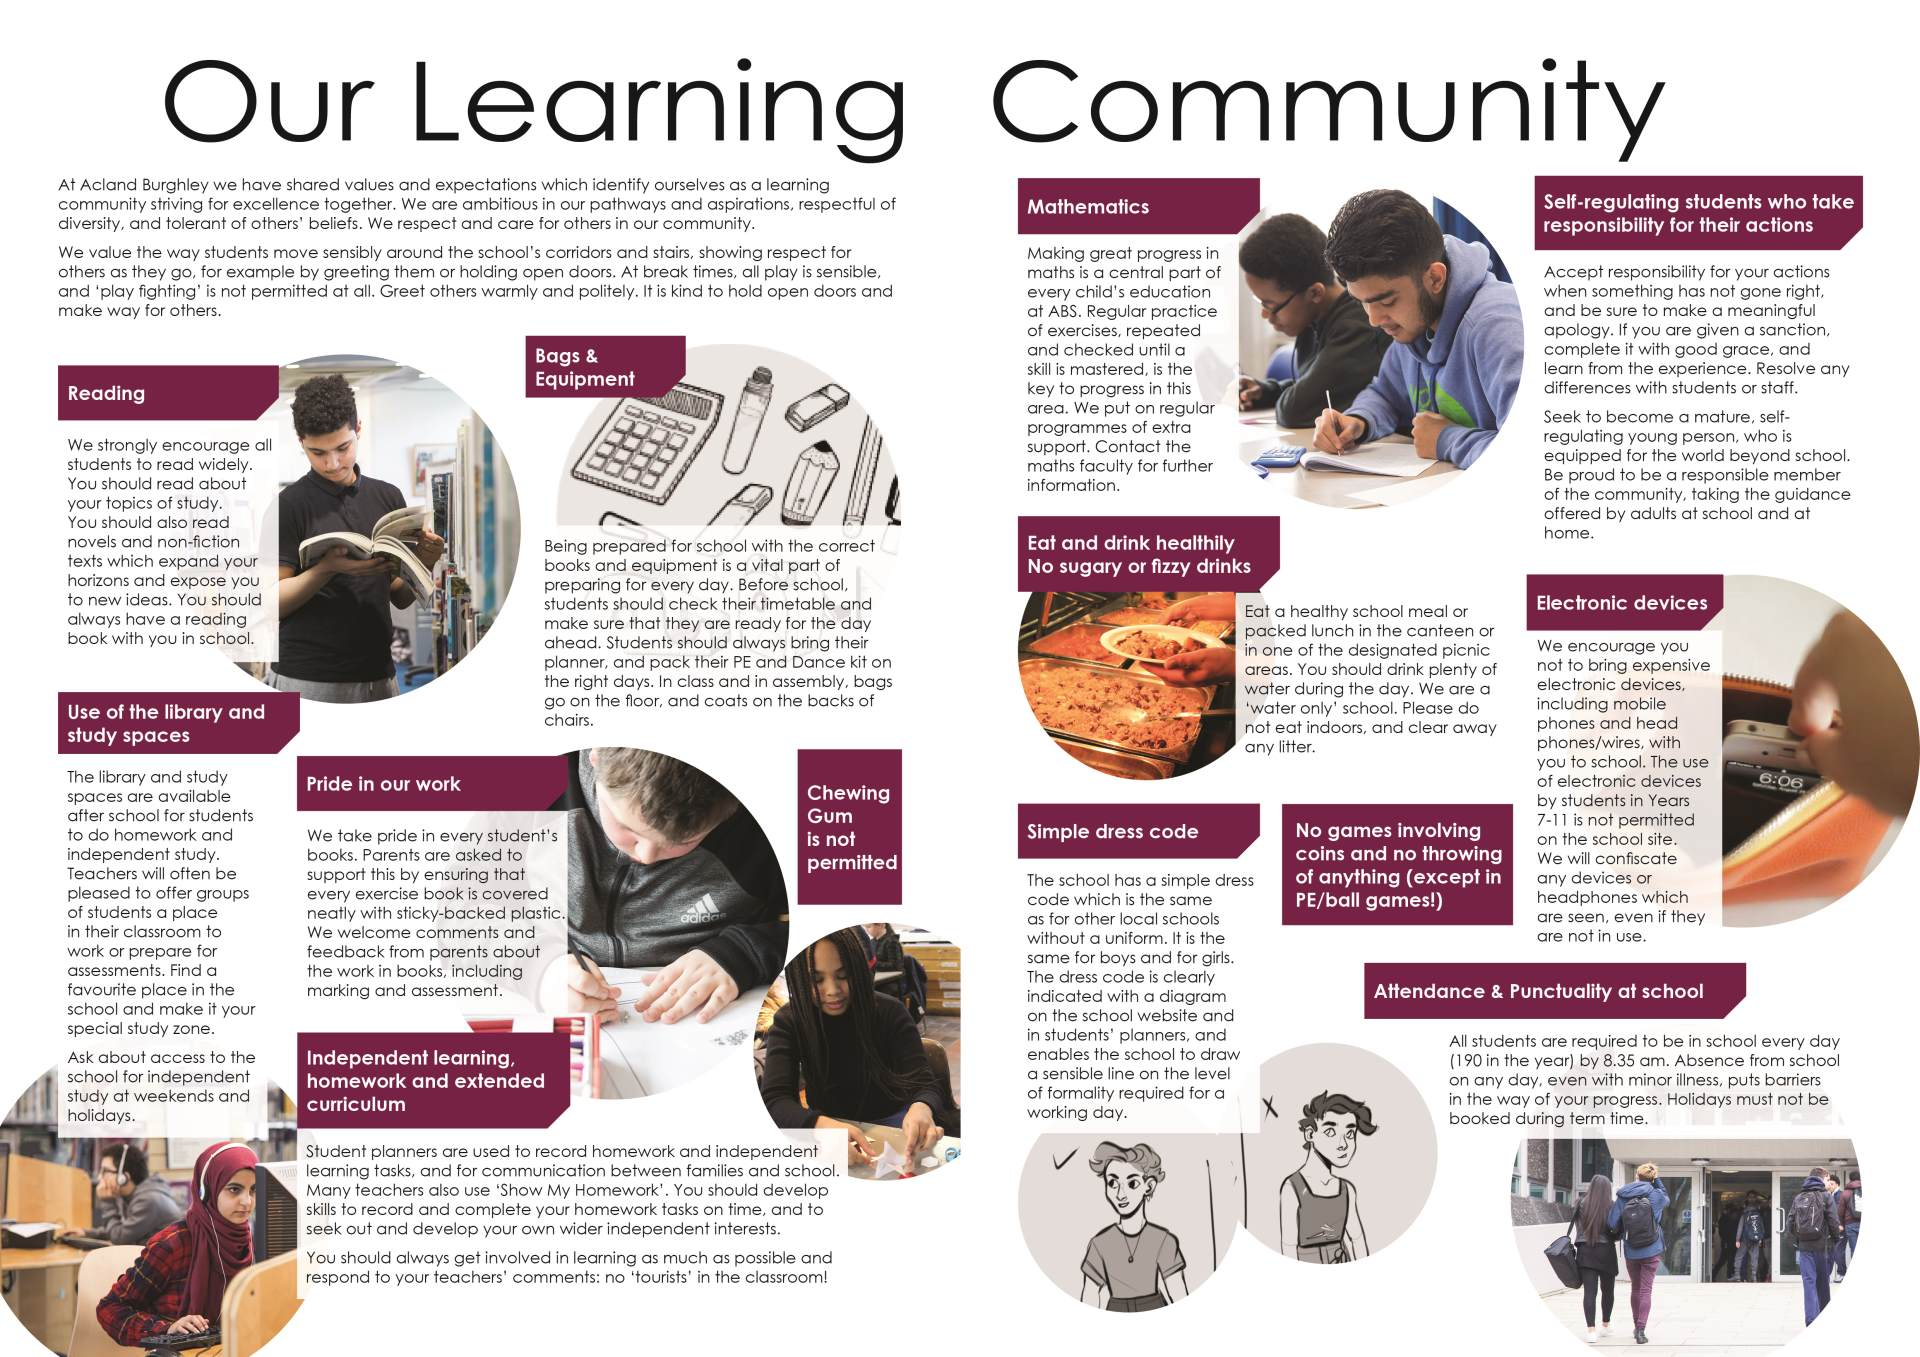 Our Learning Community JPEG